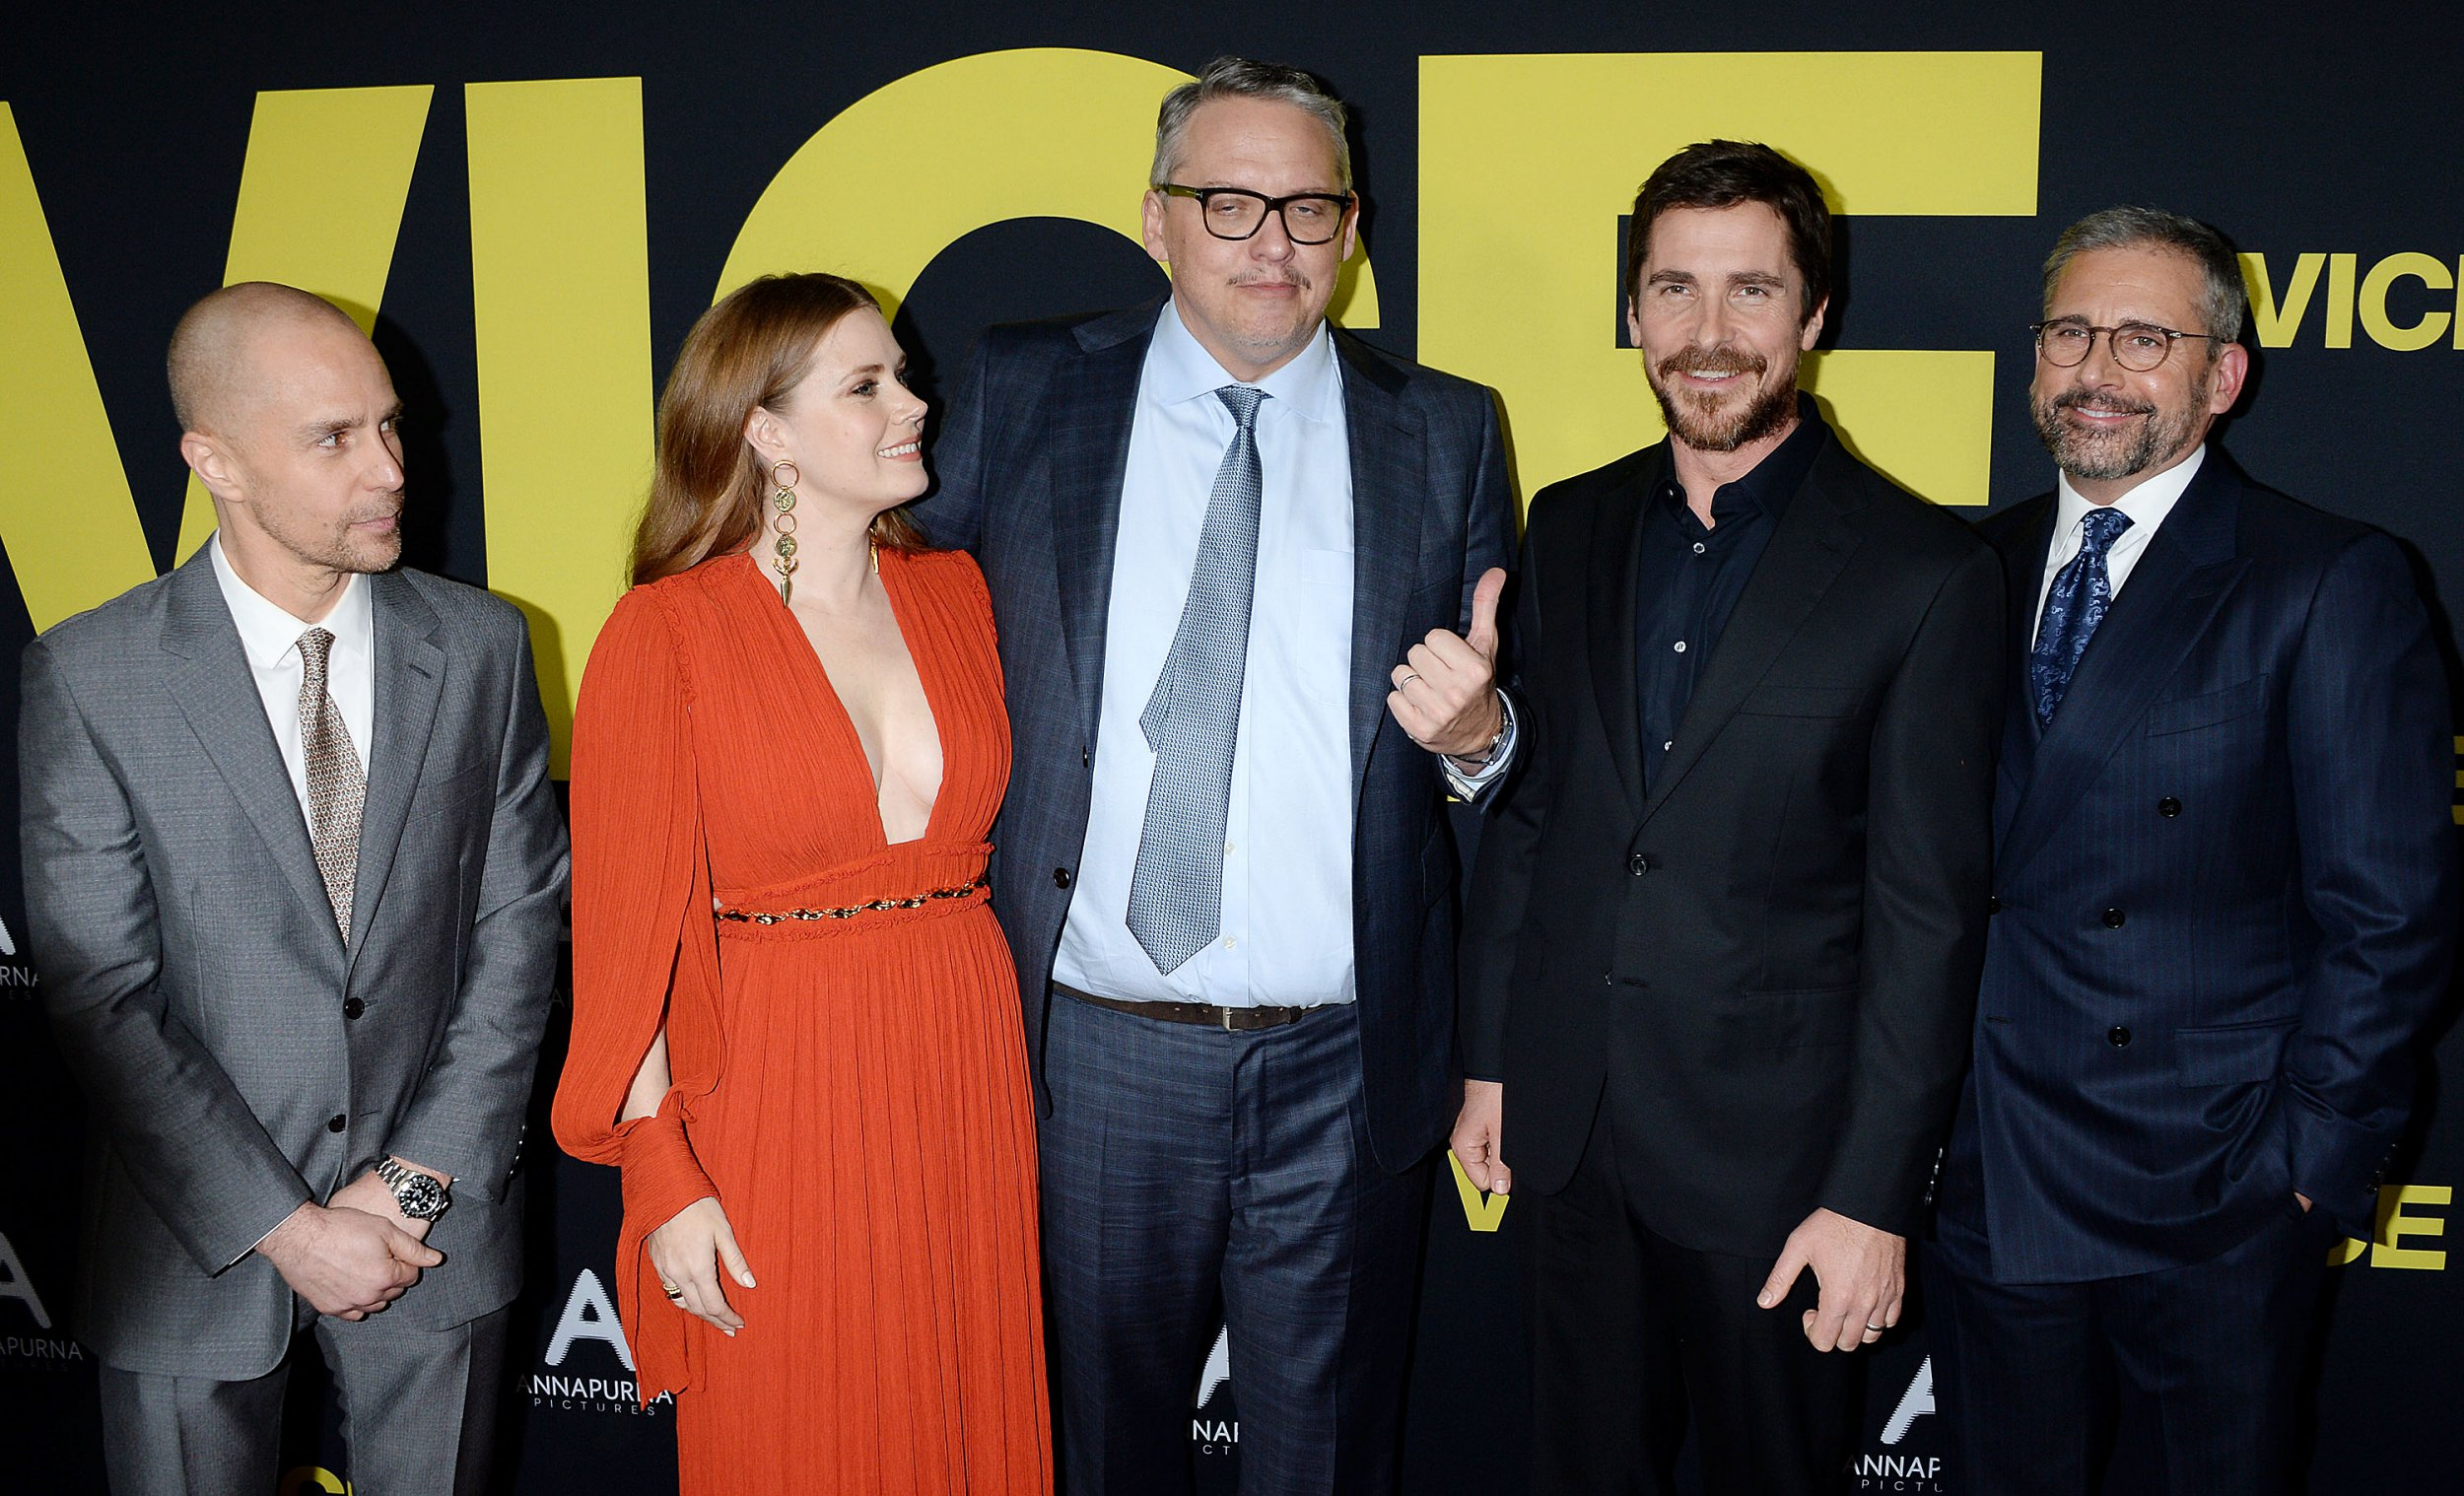 World Premiere of VICE in Los Angeles. 11 Dec 2018 Pictured: Amy Adams, Adam McKay, Sam Rockwell, Steve Carell, Christian Bale . Photo credit: MEGA TheMegaAgency.com +1 888 505 6342